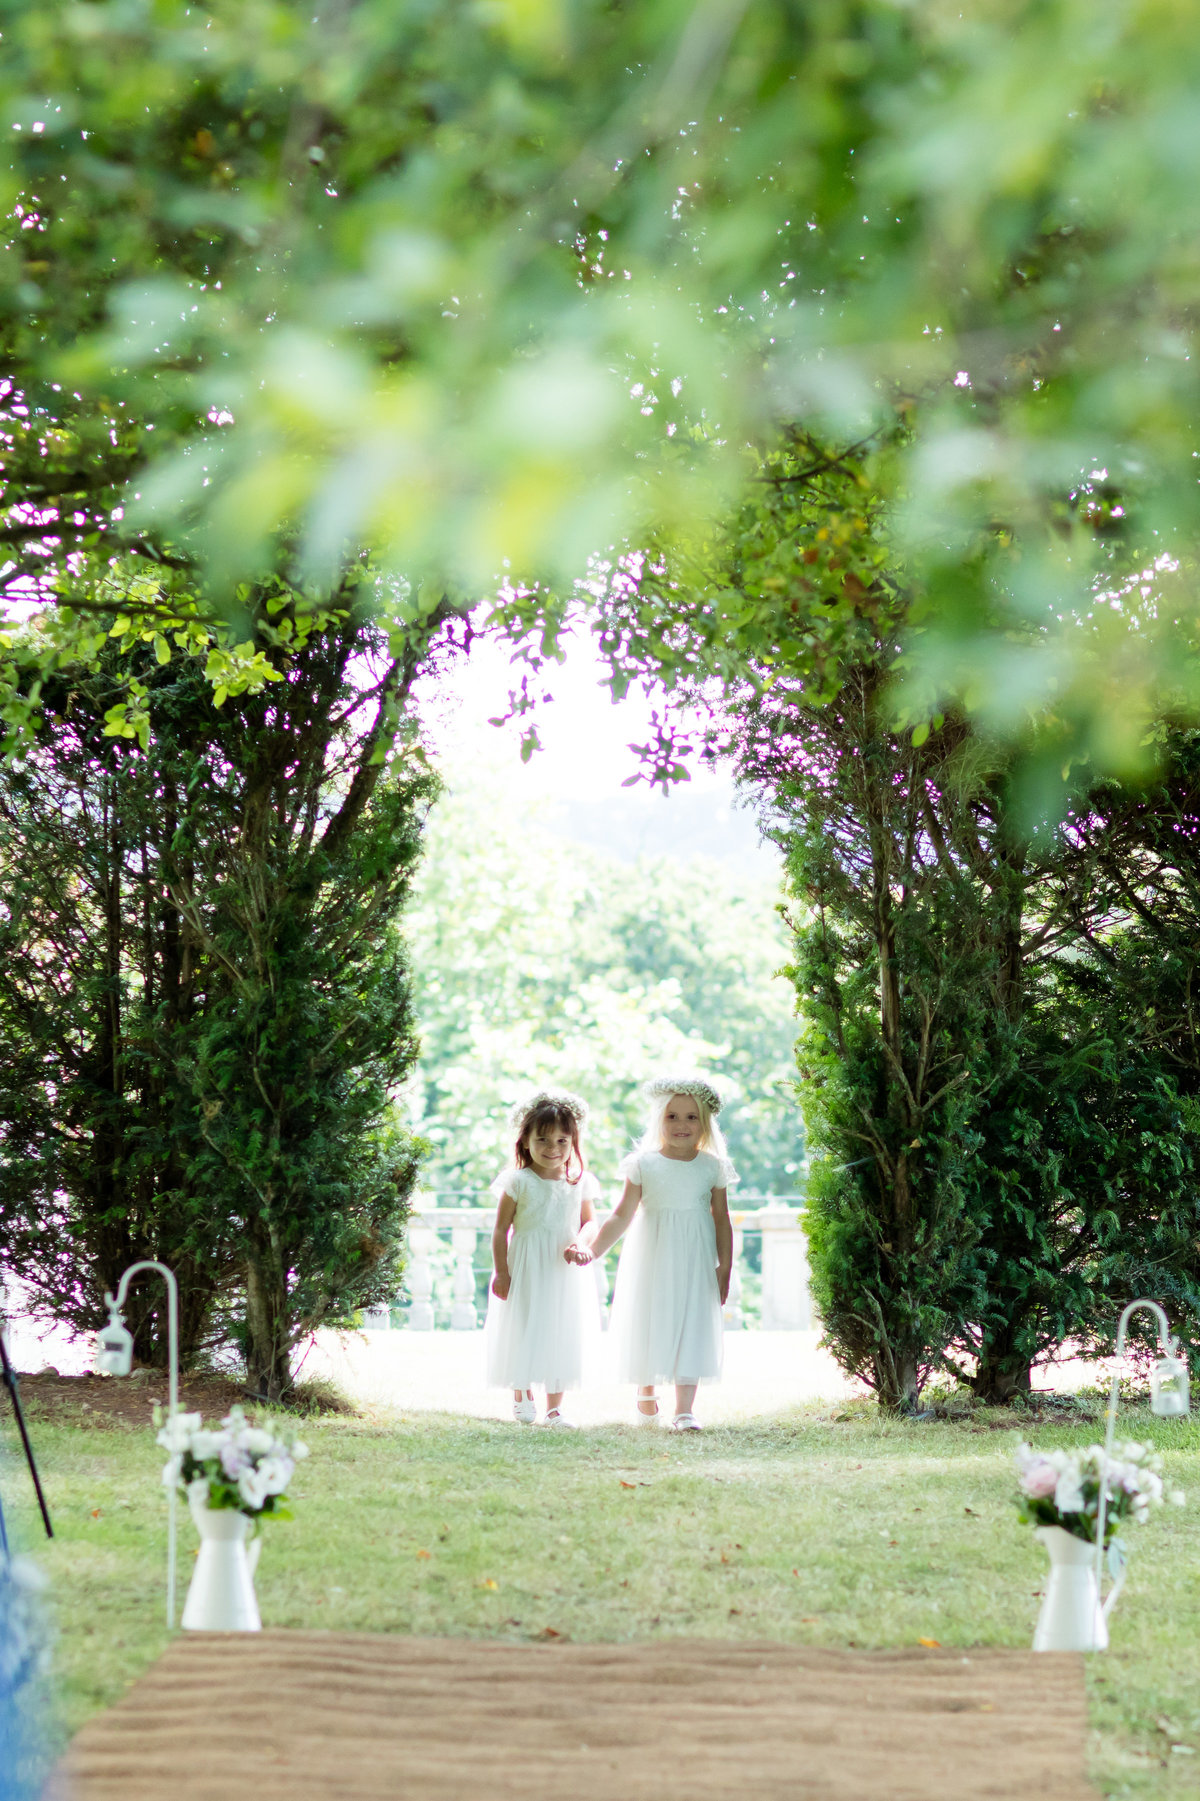 june wedding at rockbere manor devon